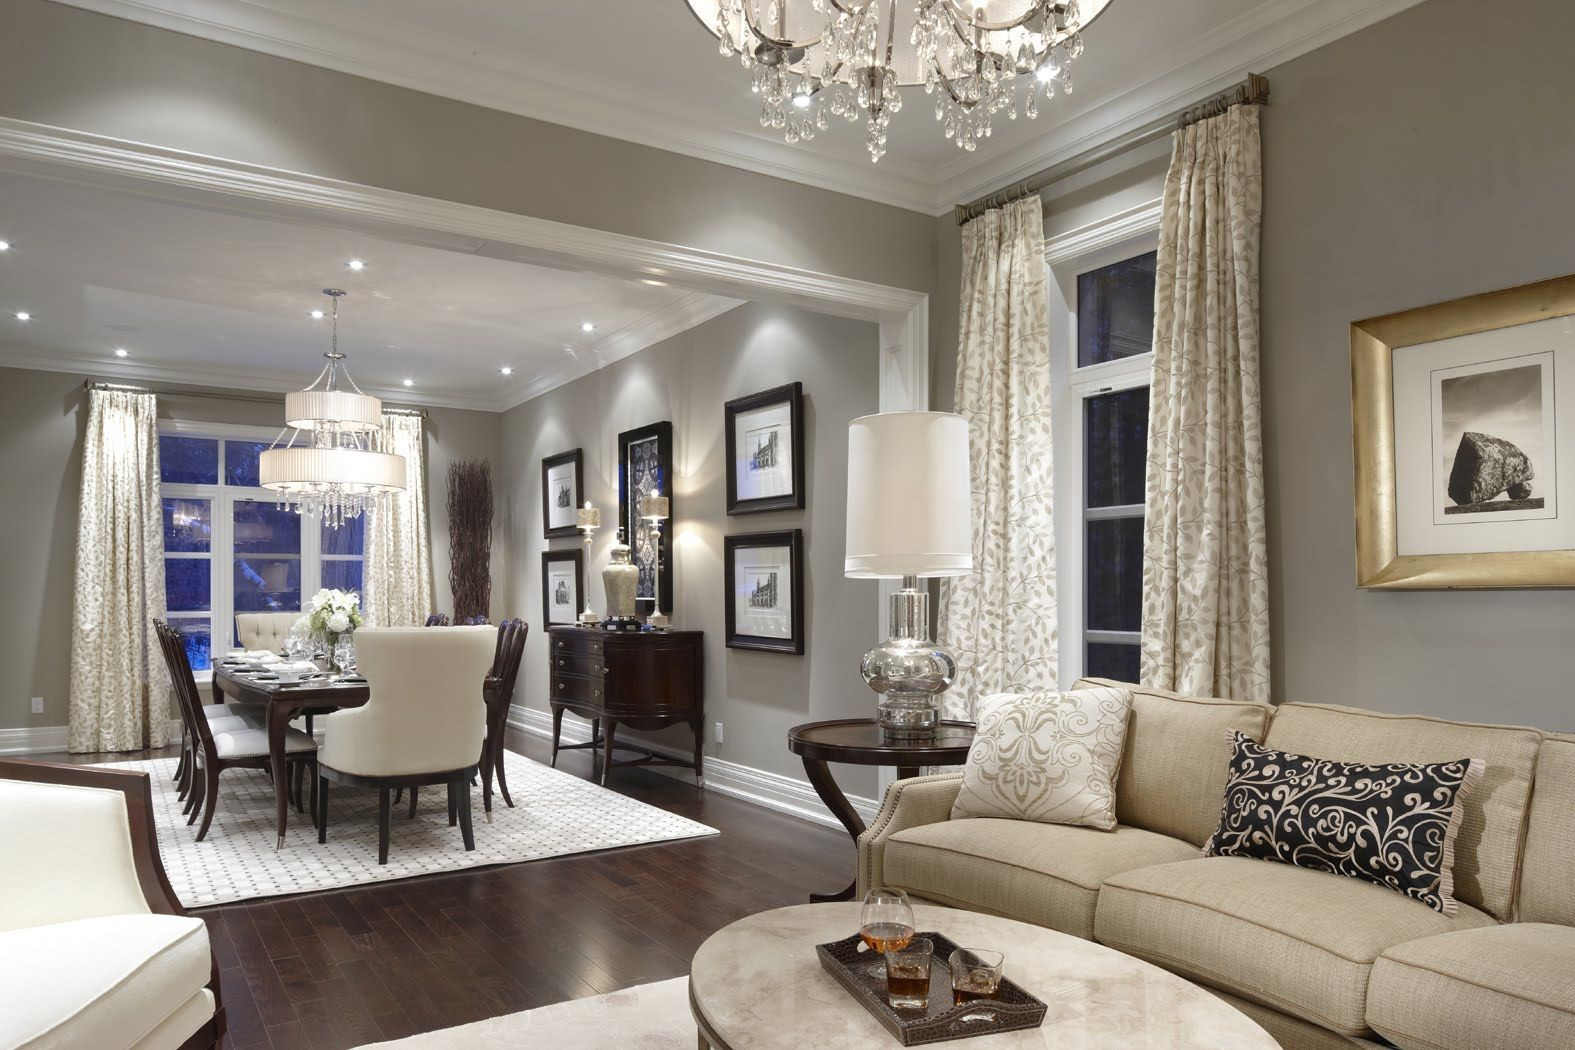 hardwood floor apartments charlotte nc of benjamin moore colors for your living room decor livingroom ideas pertaining to a traditional living room with medium tone hardwood floors a traditional living room with medium tone hardwood floors